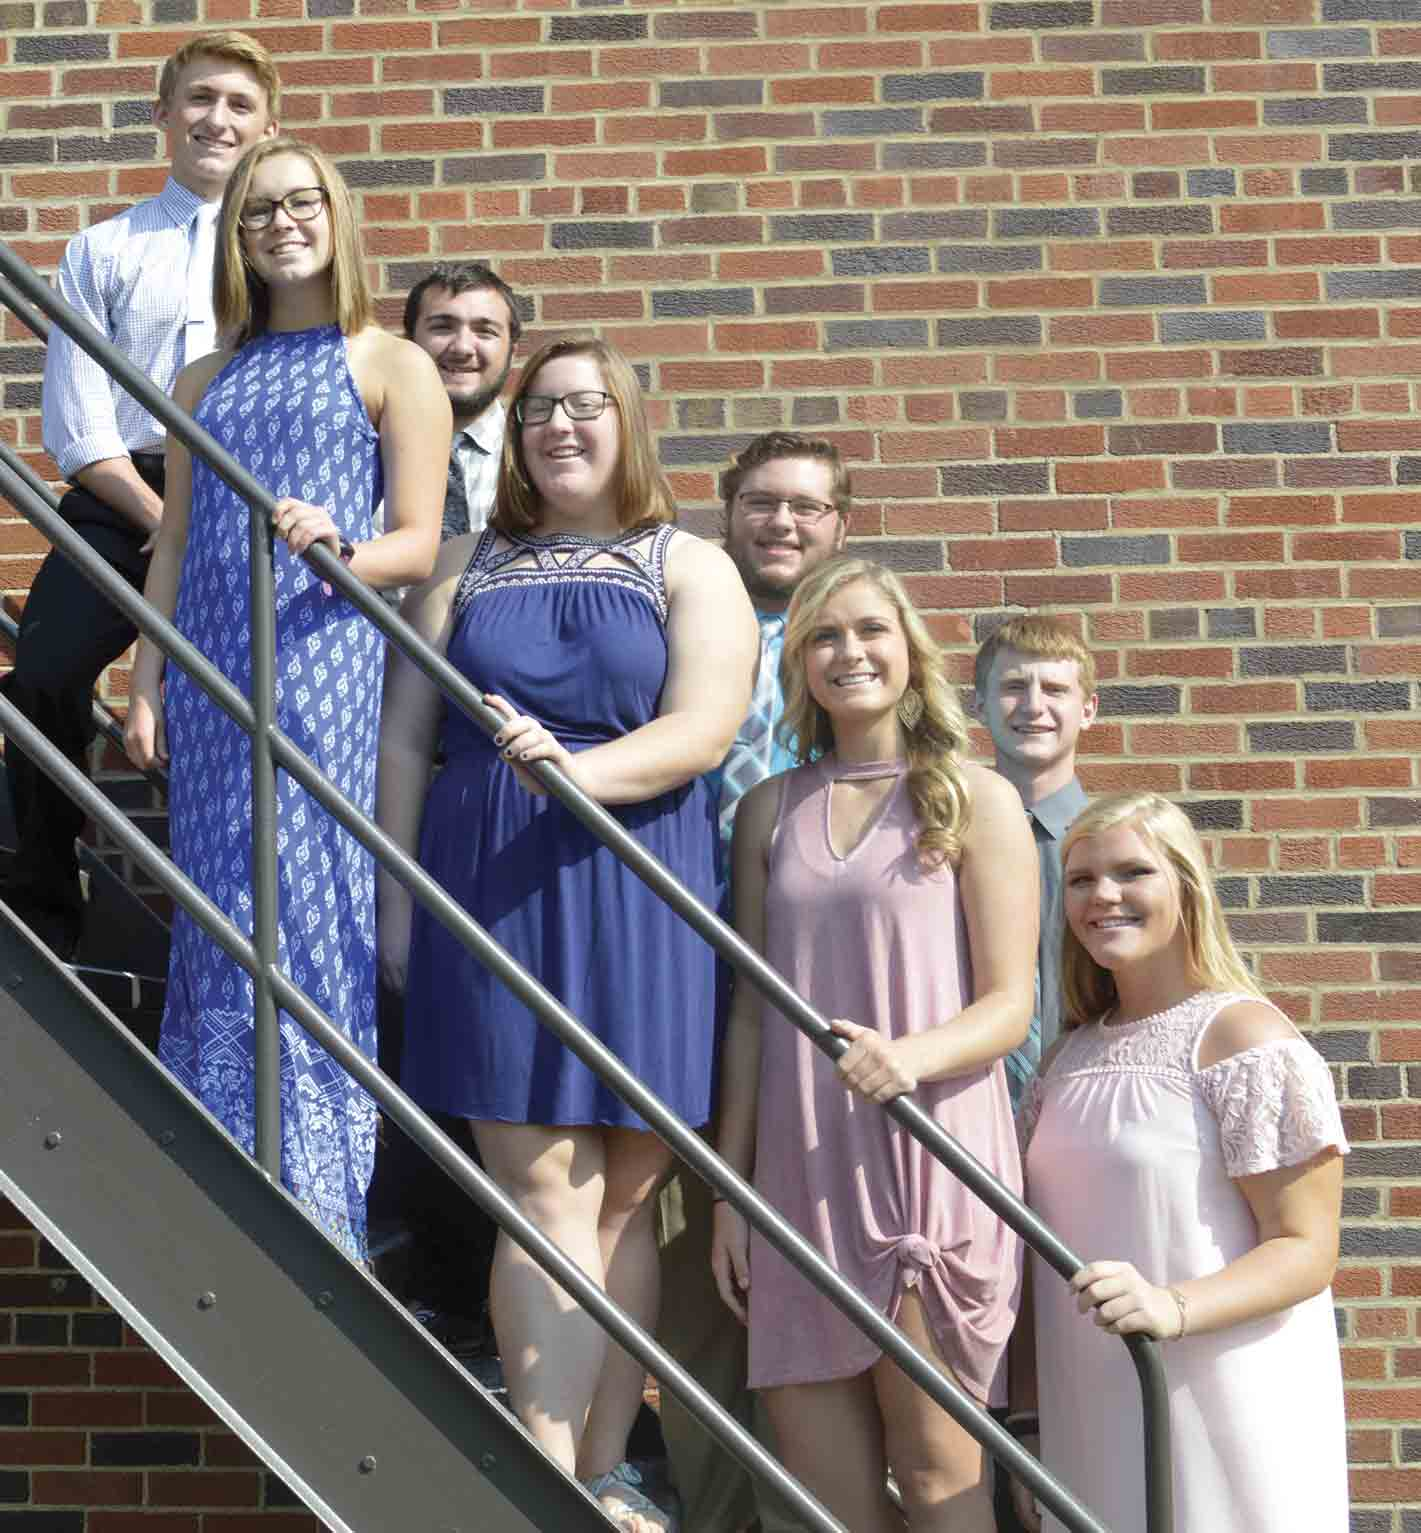 Candidates for South Winneshiek High School's 2017 Homecoming King and Queen include (front, l-r) Madisen Ondrashek, Cassidy Frana, Jaden Schweinefus, and Alexa Jacobsen; (back) Noah Faldet, Wyatt Trezona, Jackson Lukes, and Josh Lensing. (Zakary Kriener photo) 	South Winn...